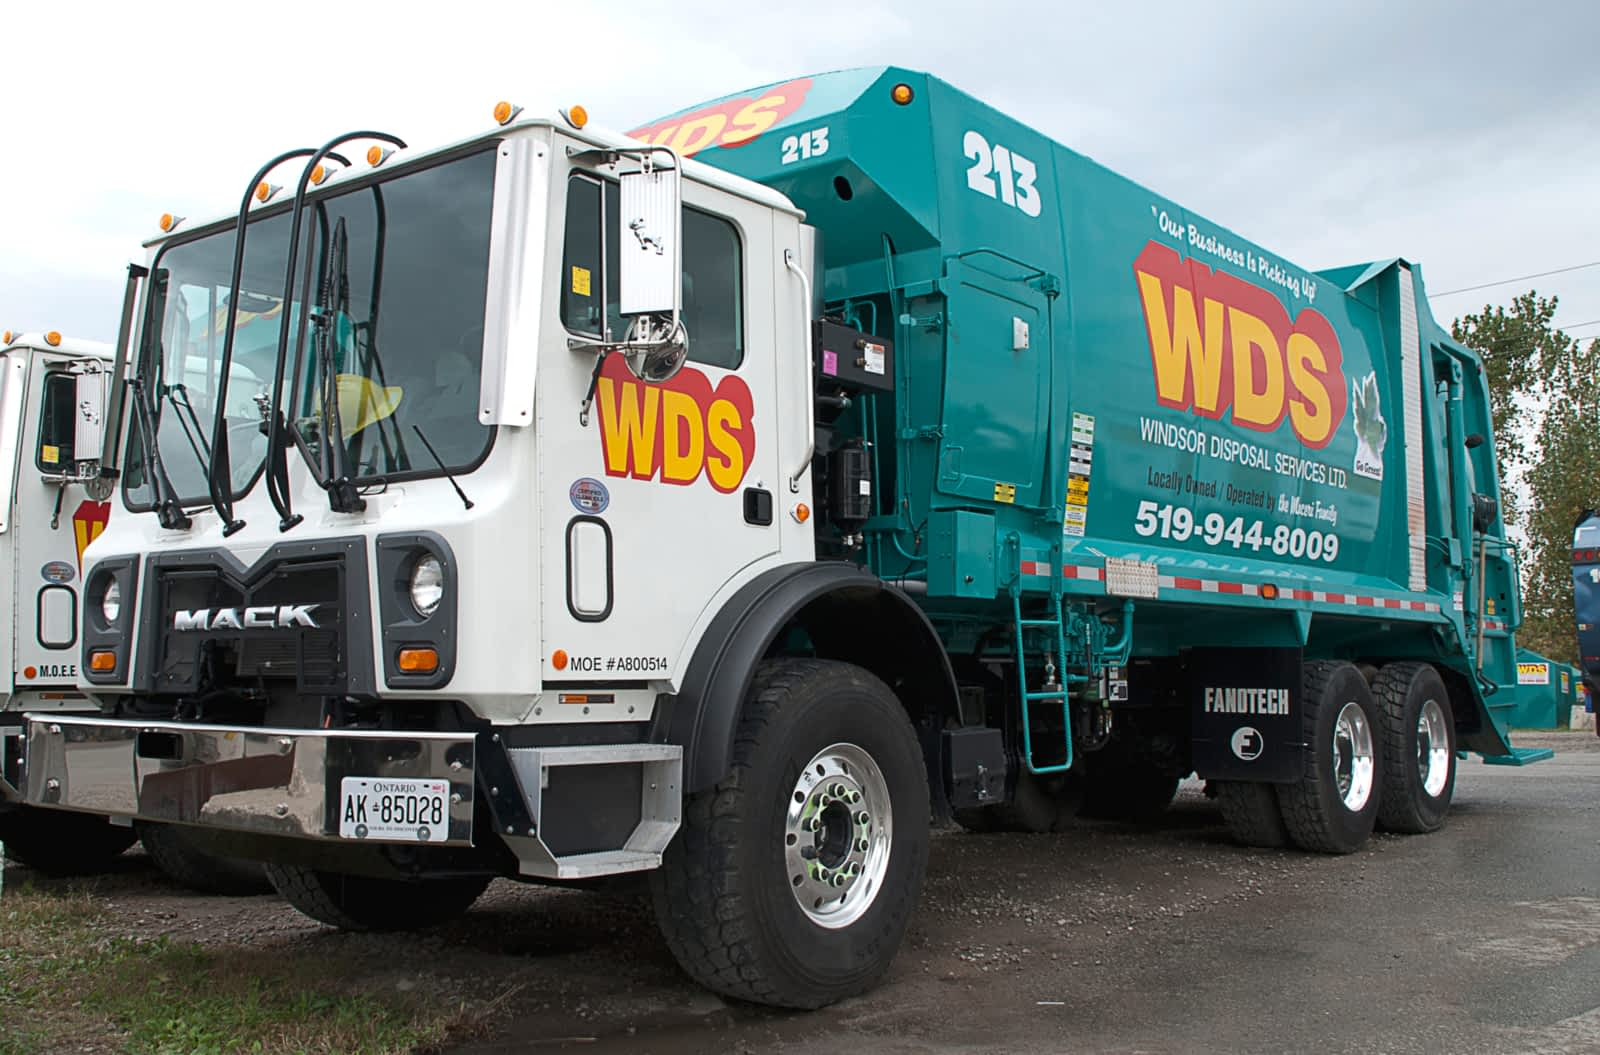 image of a garbage truck